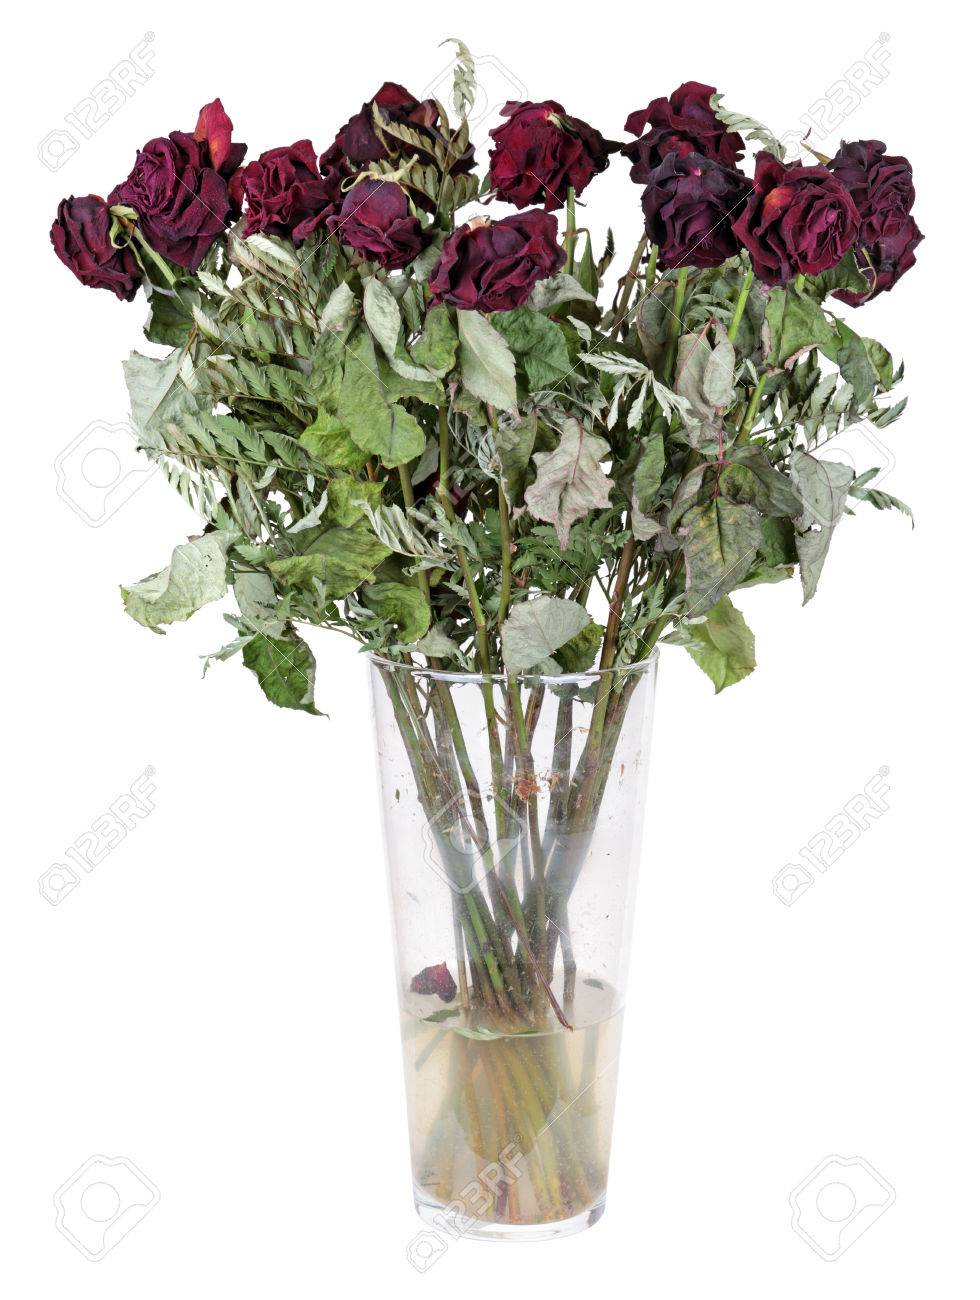 A Glass Vase With The Dead Bouquet Of Roses Isolated On White